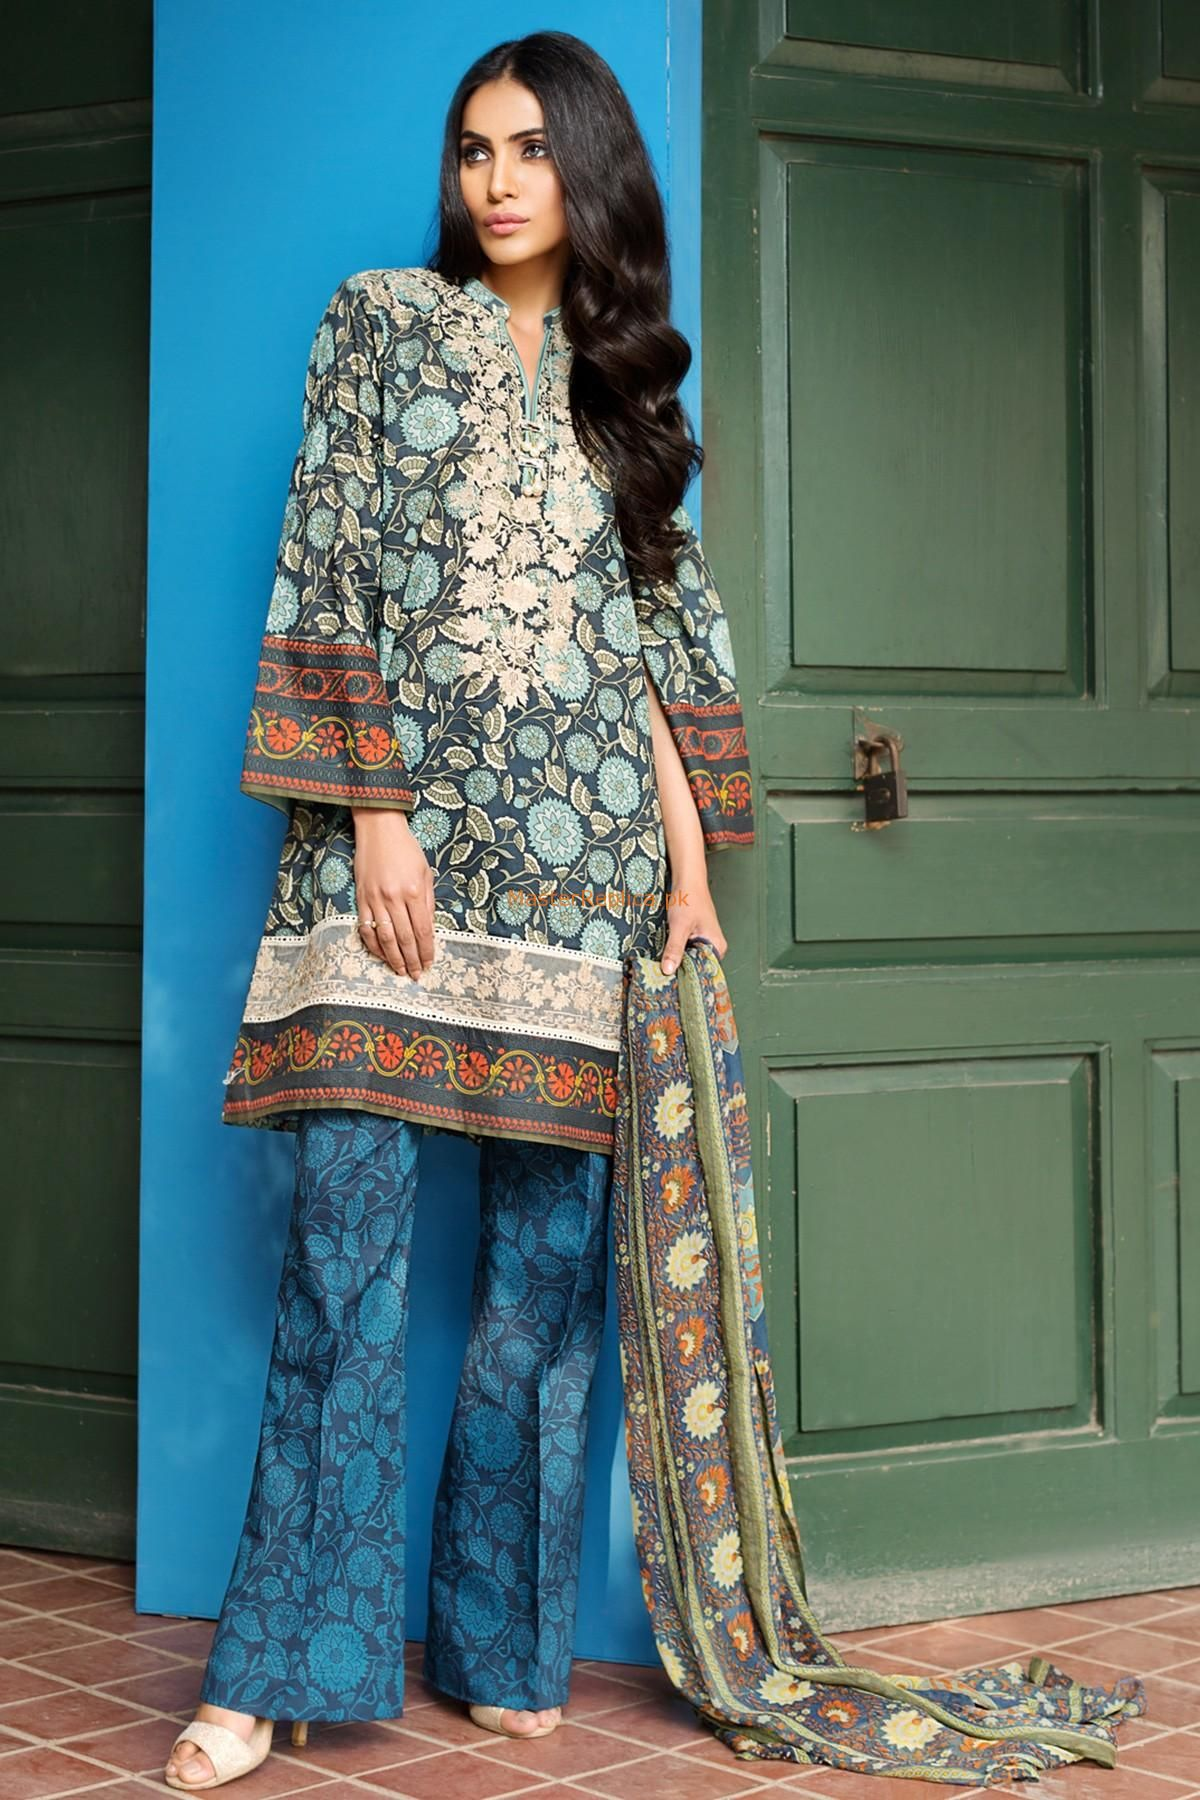 1ffb7d1fdc Check Out Khaadi G17204-A-BLUE replica at Master Replica Pakistan  #pakiclothing #